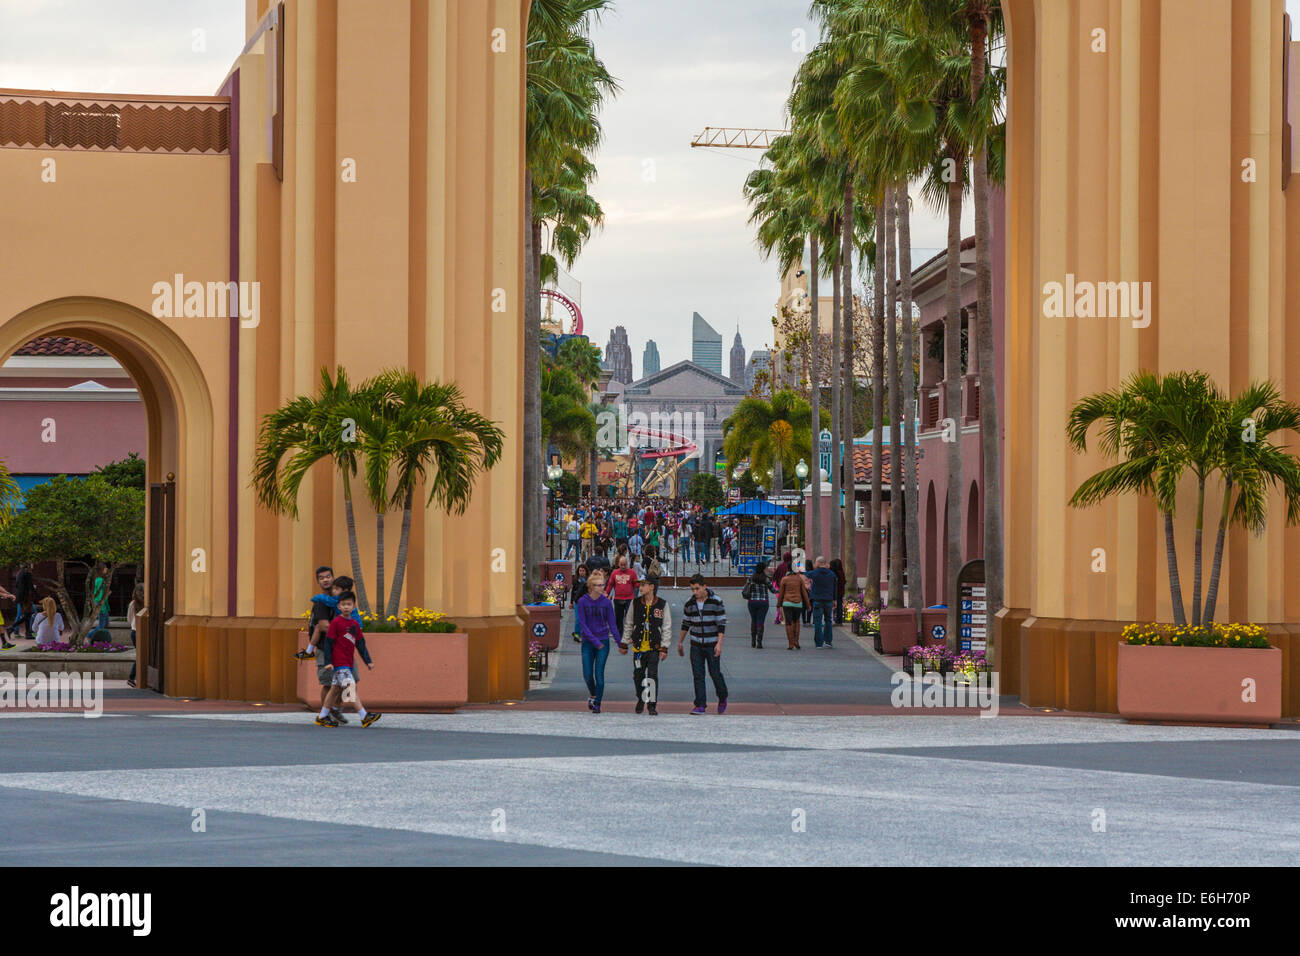 Park guests at entrance to Universal Studios theme park in Orlando, Florida - Stock Image